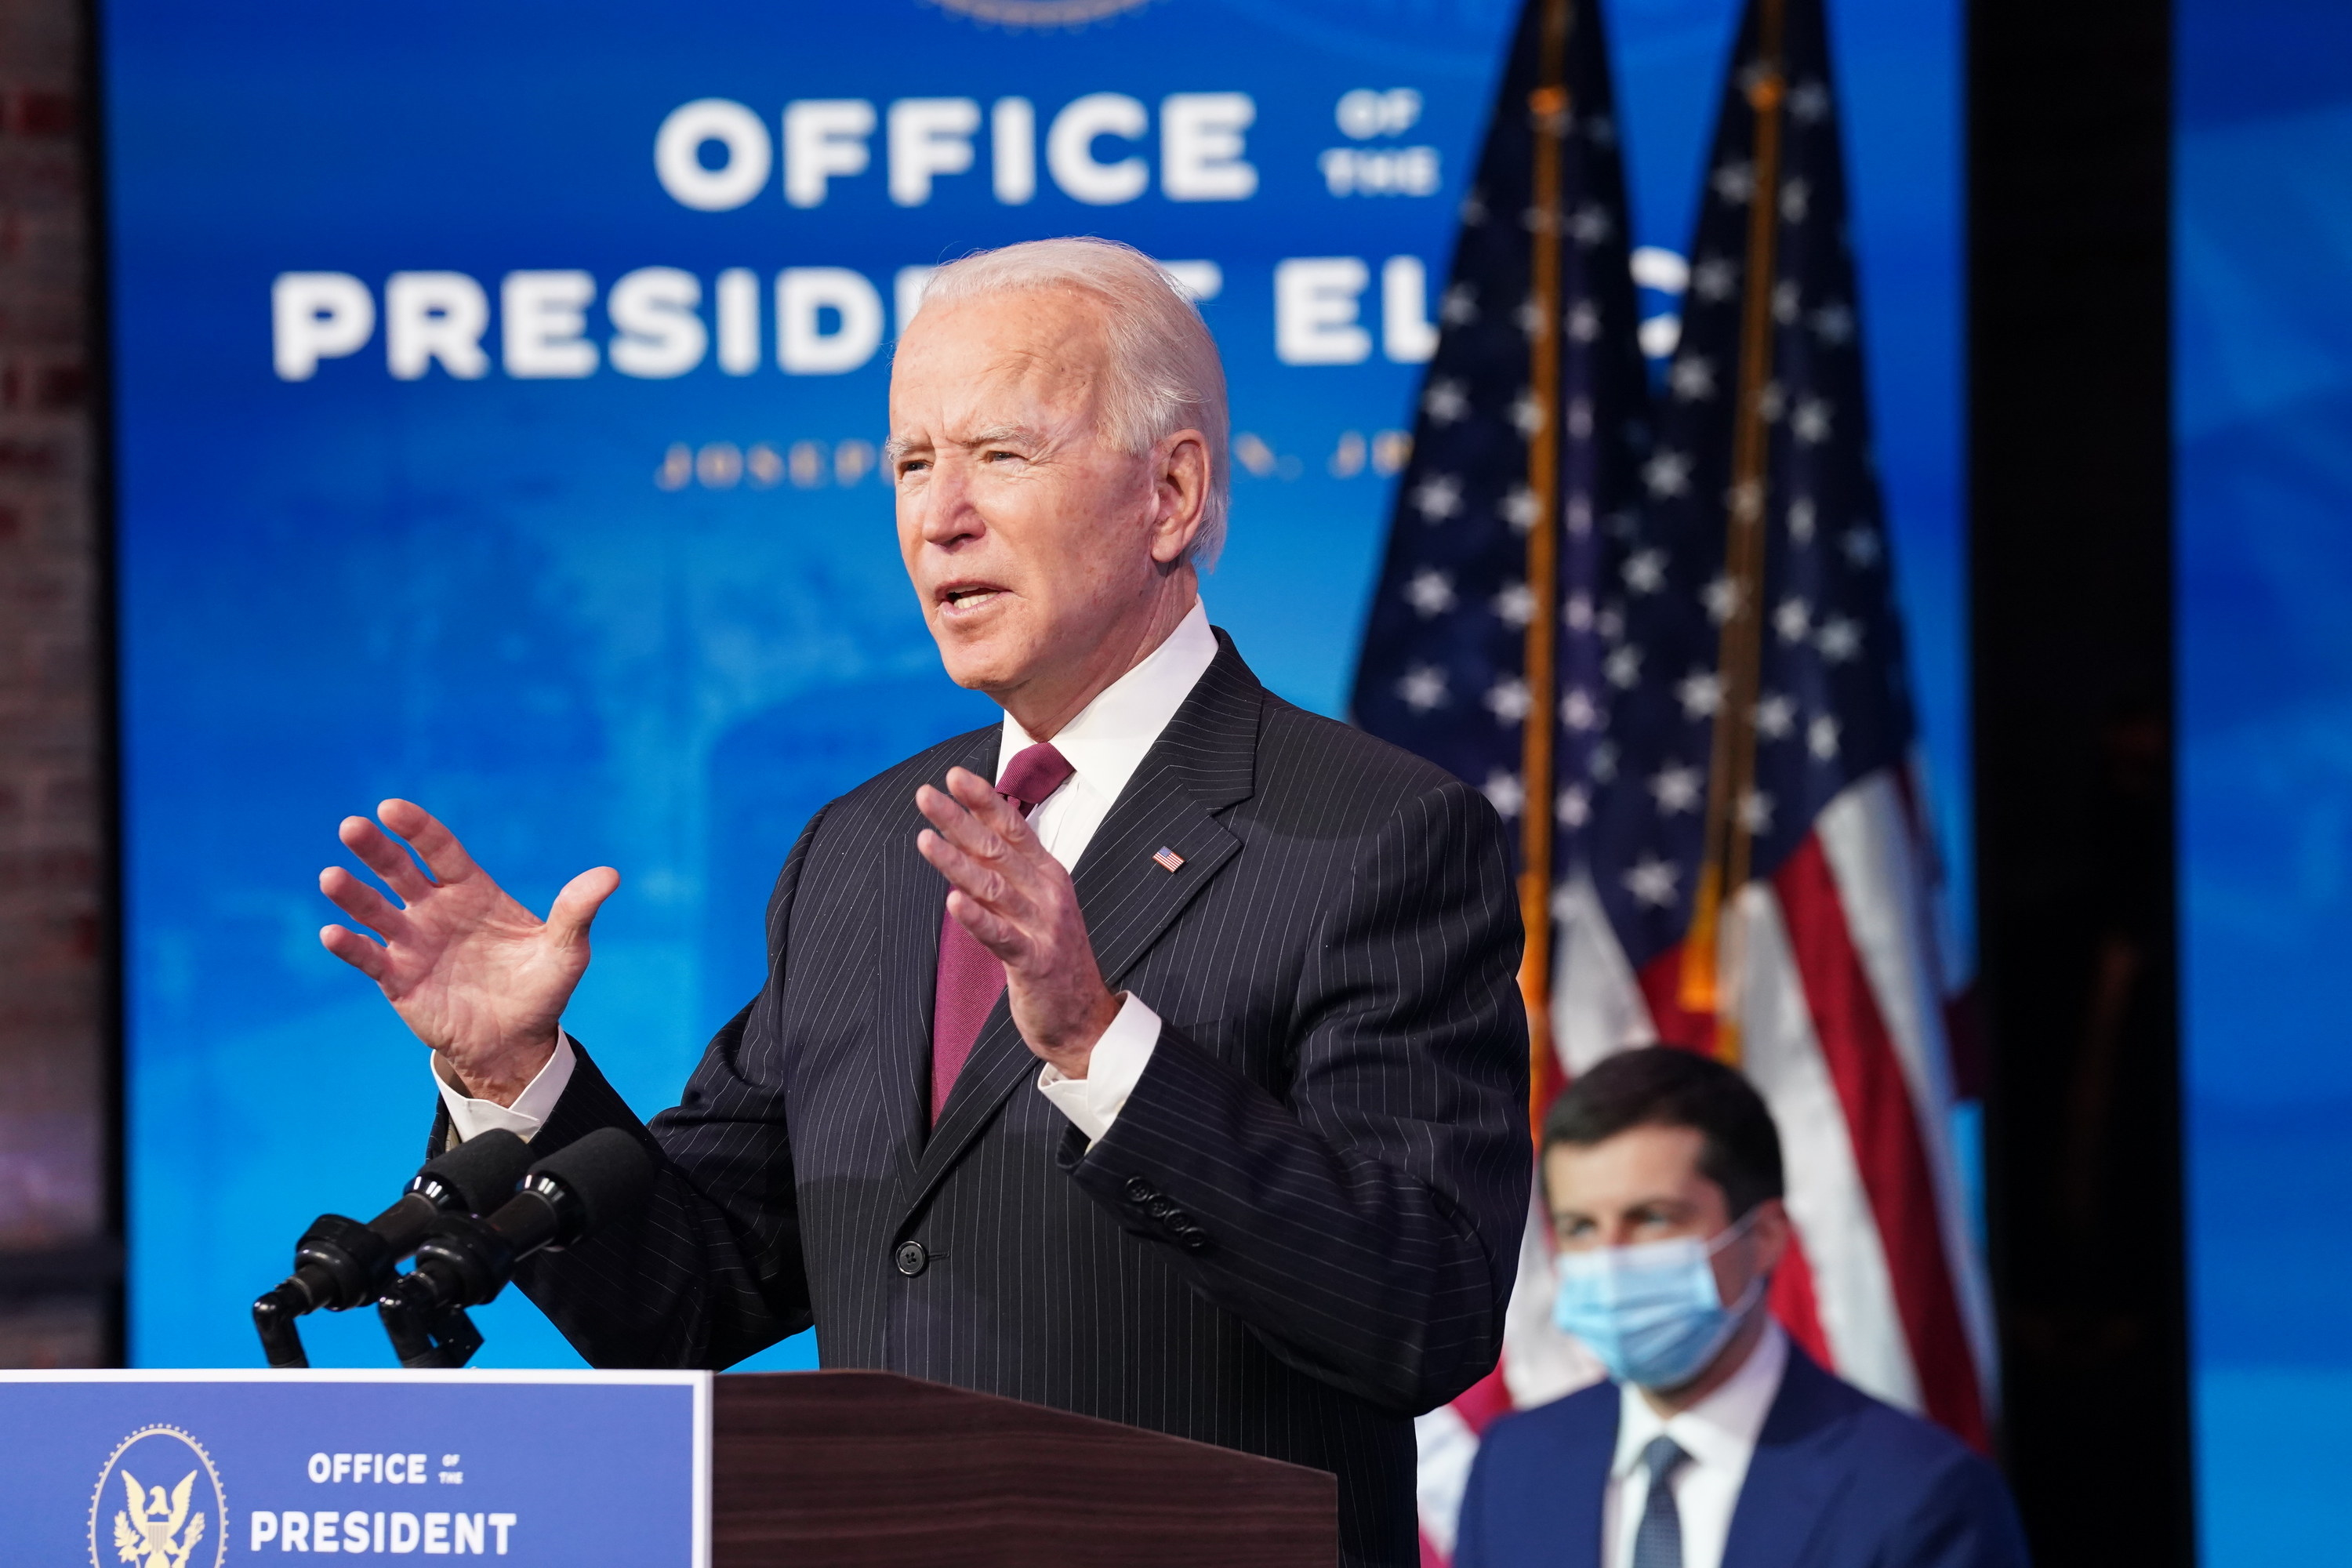 Joe Biden speaks at a podium as Pete Buttigieg sits behind him wearing a face mask